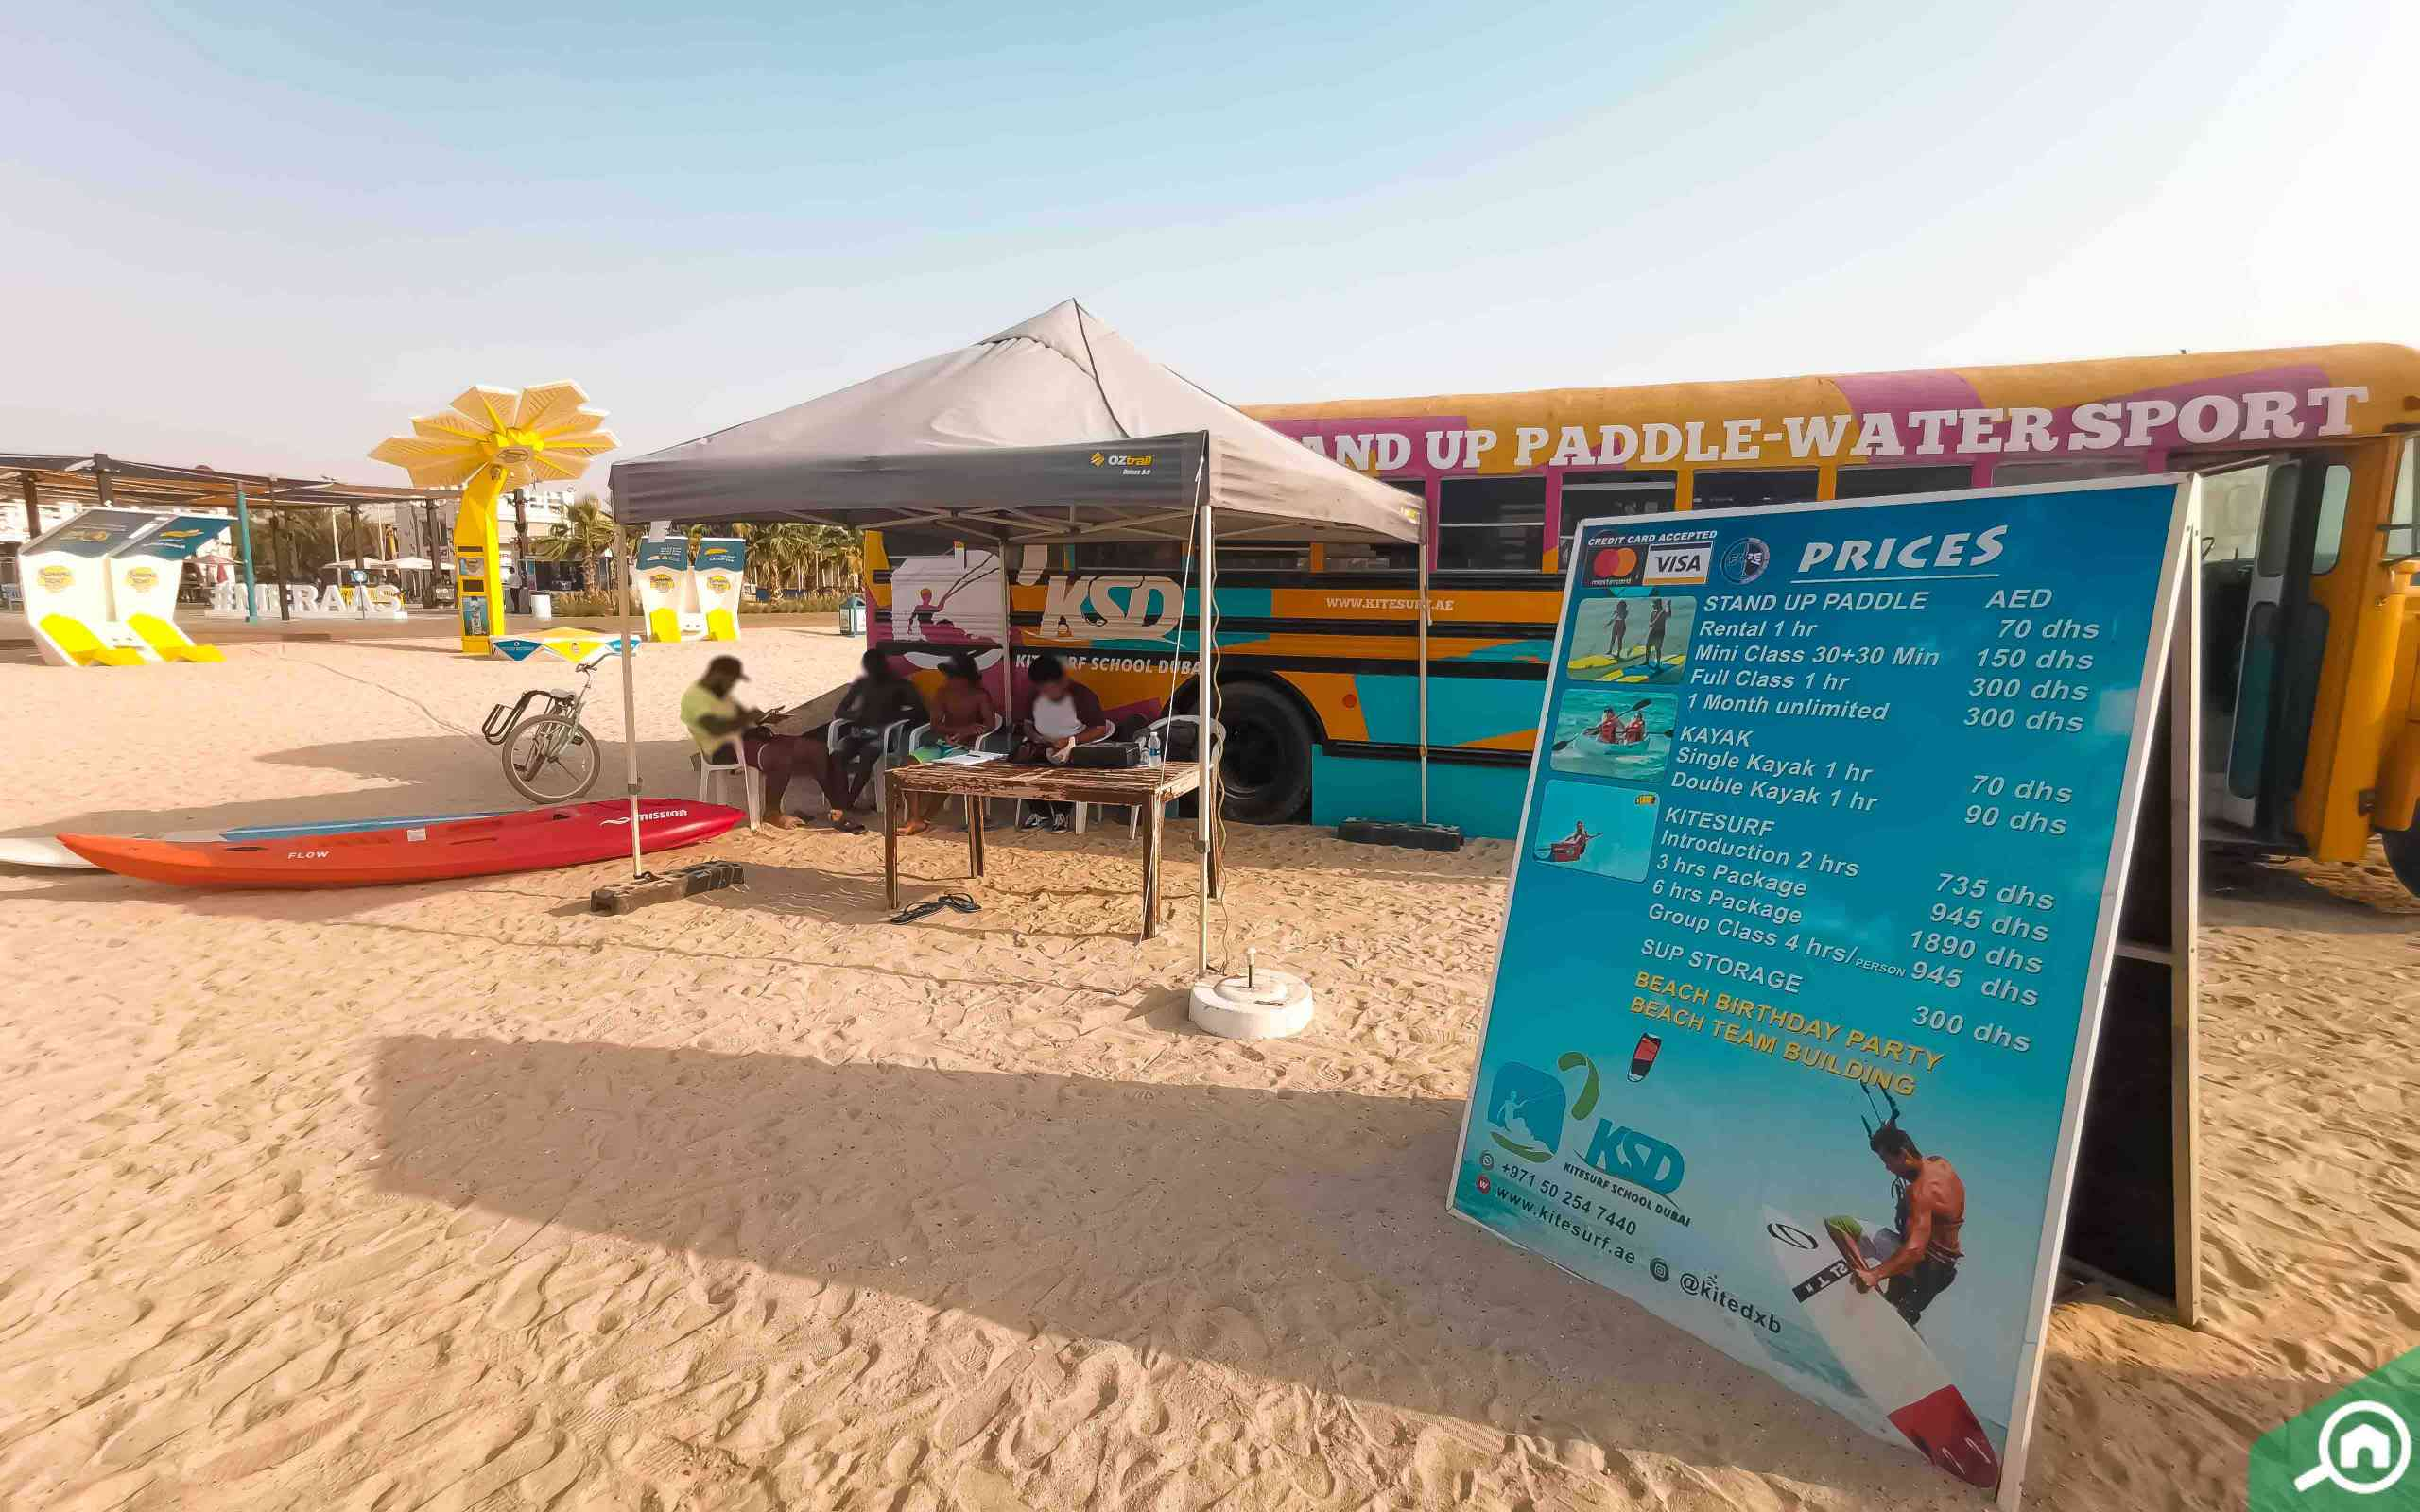 kite beach near sheikh zayed road